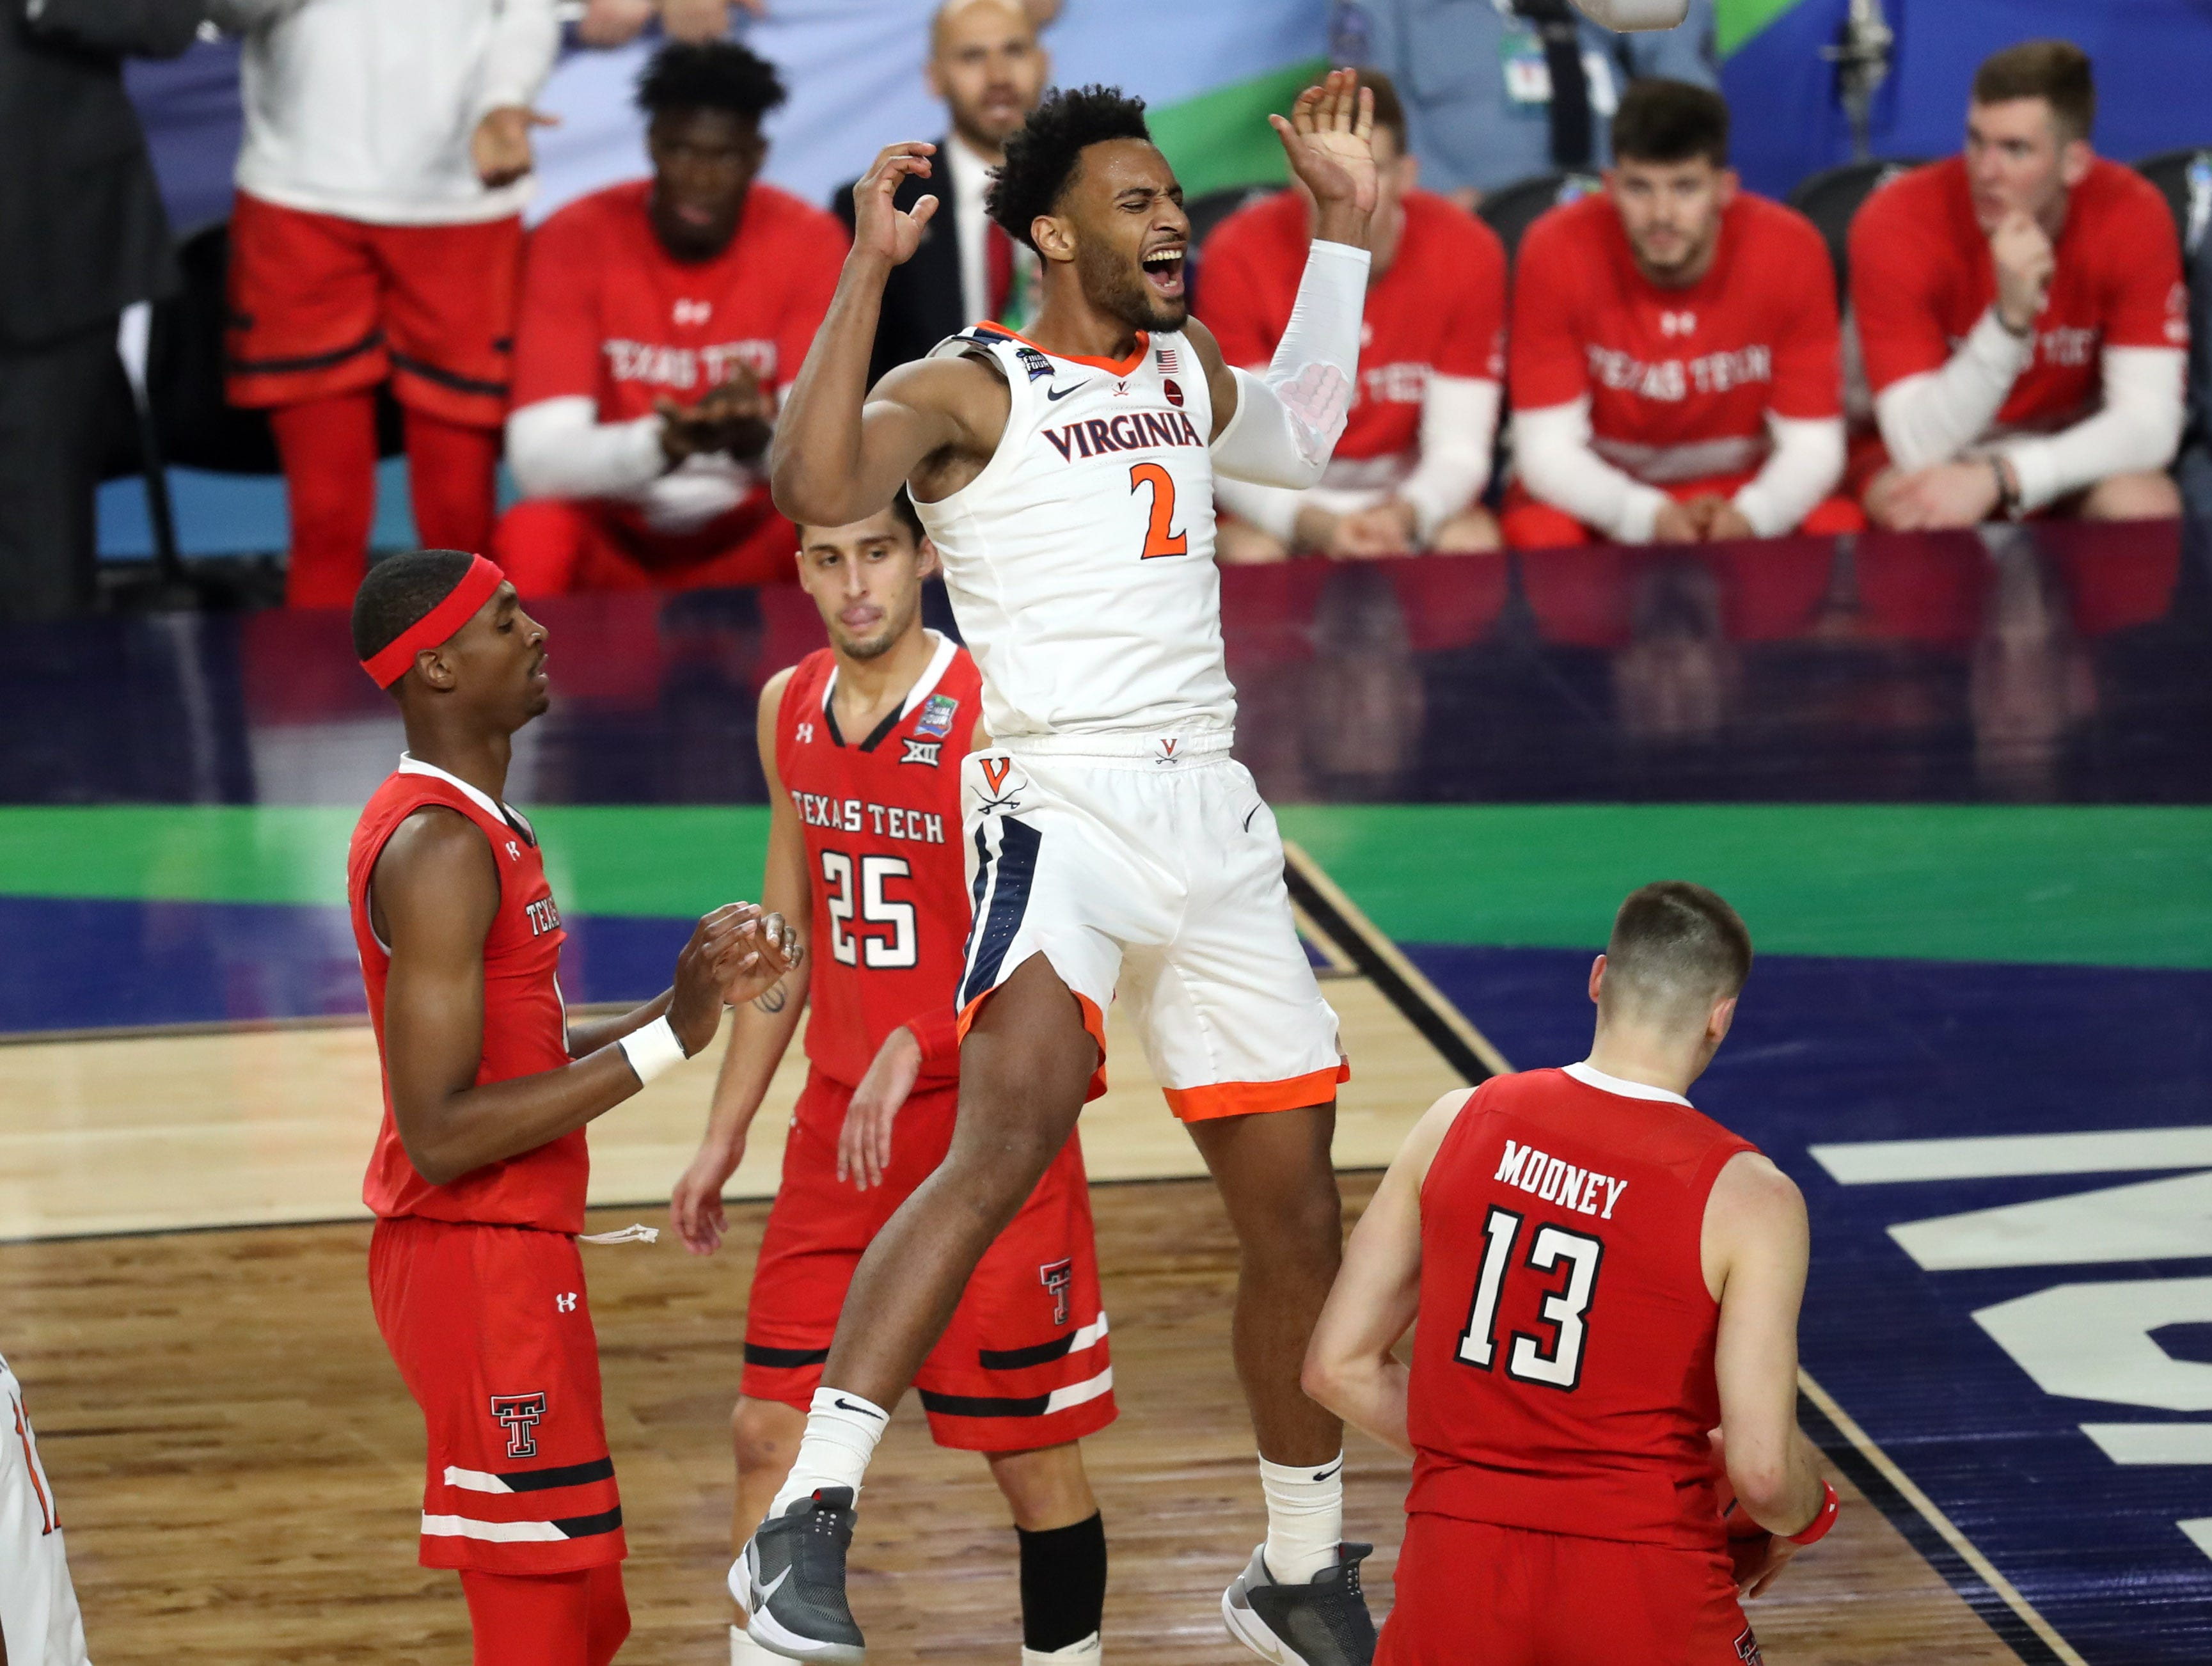 Apr 8, 2019; Minneapolis, MN, USA; Virginia Cavaliers guard Braxton Key (2) celebrates after a dunk against the Texas Tech Red Raiders during the first half in the championship game of the 2019 men's Final Four at US Bank Stadium. Mandatory Credit: Brace Hemmelgarn-USA TODAY Sports